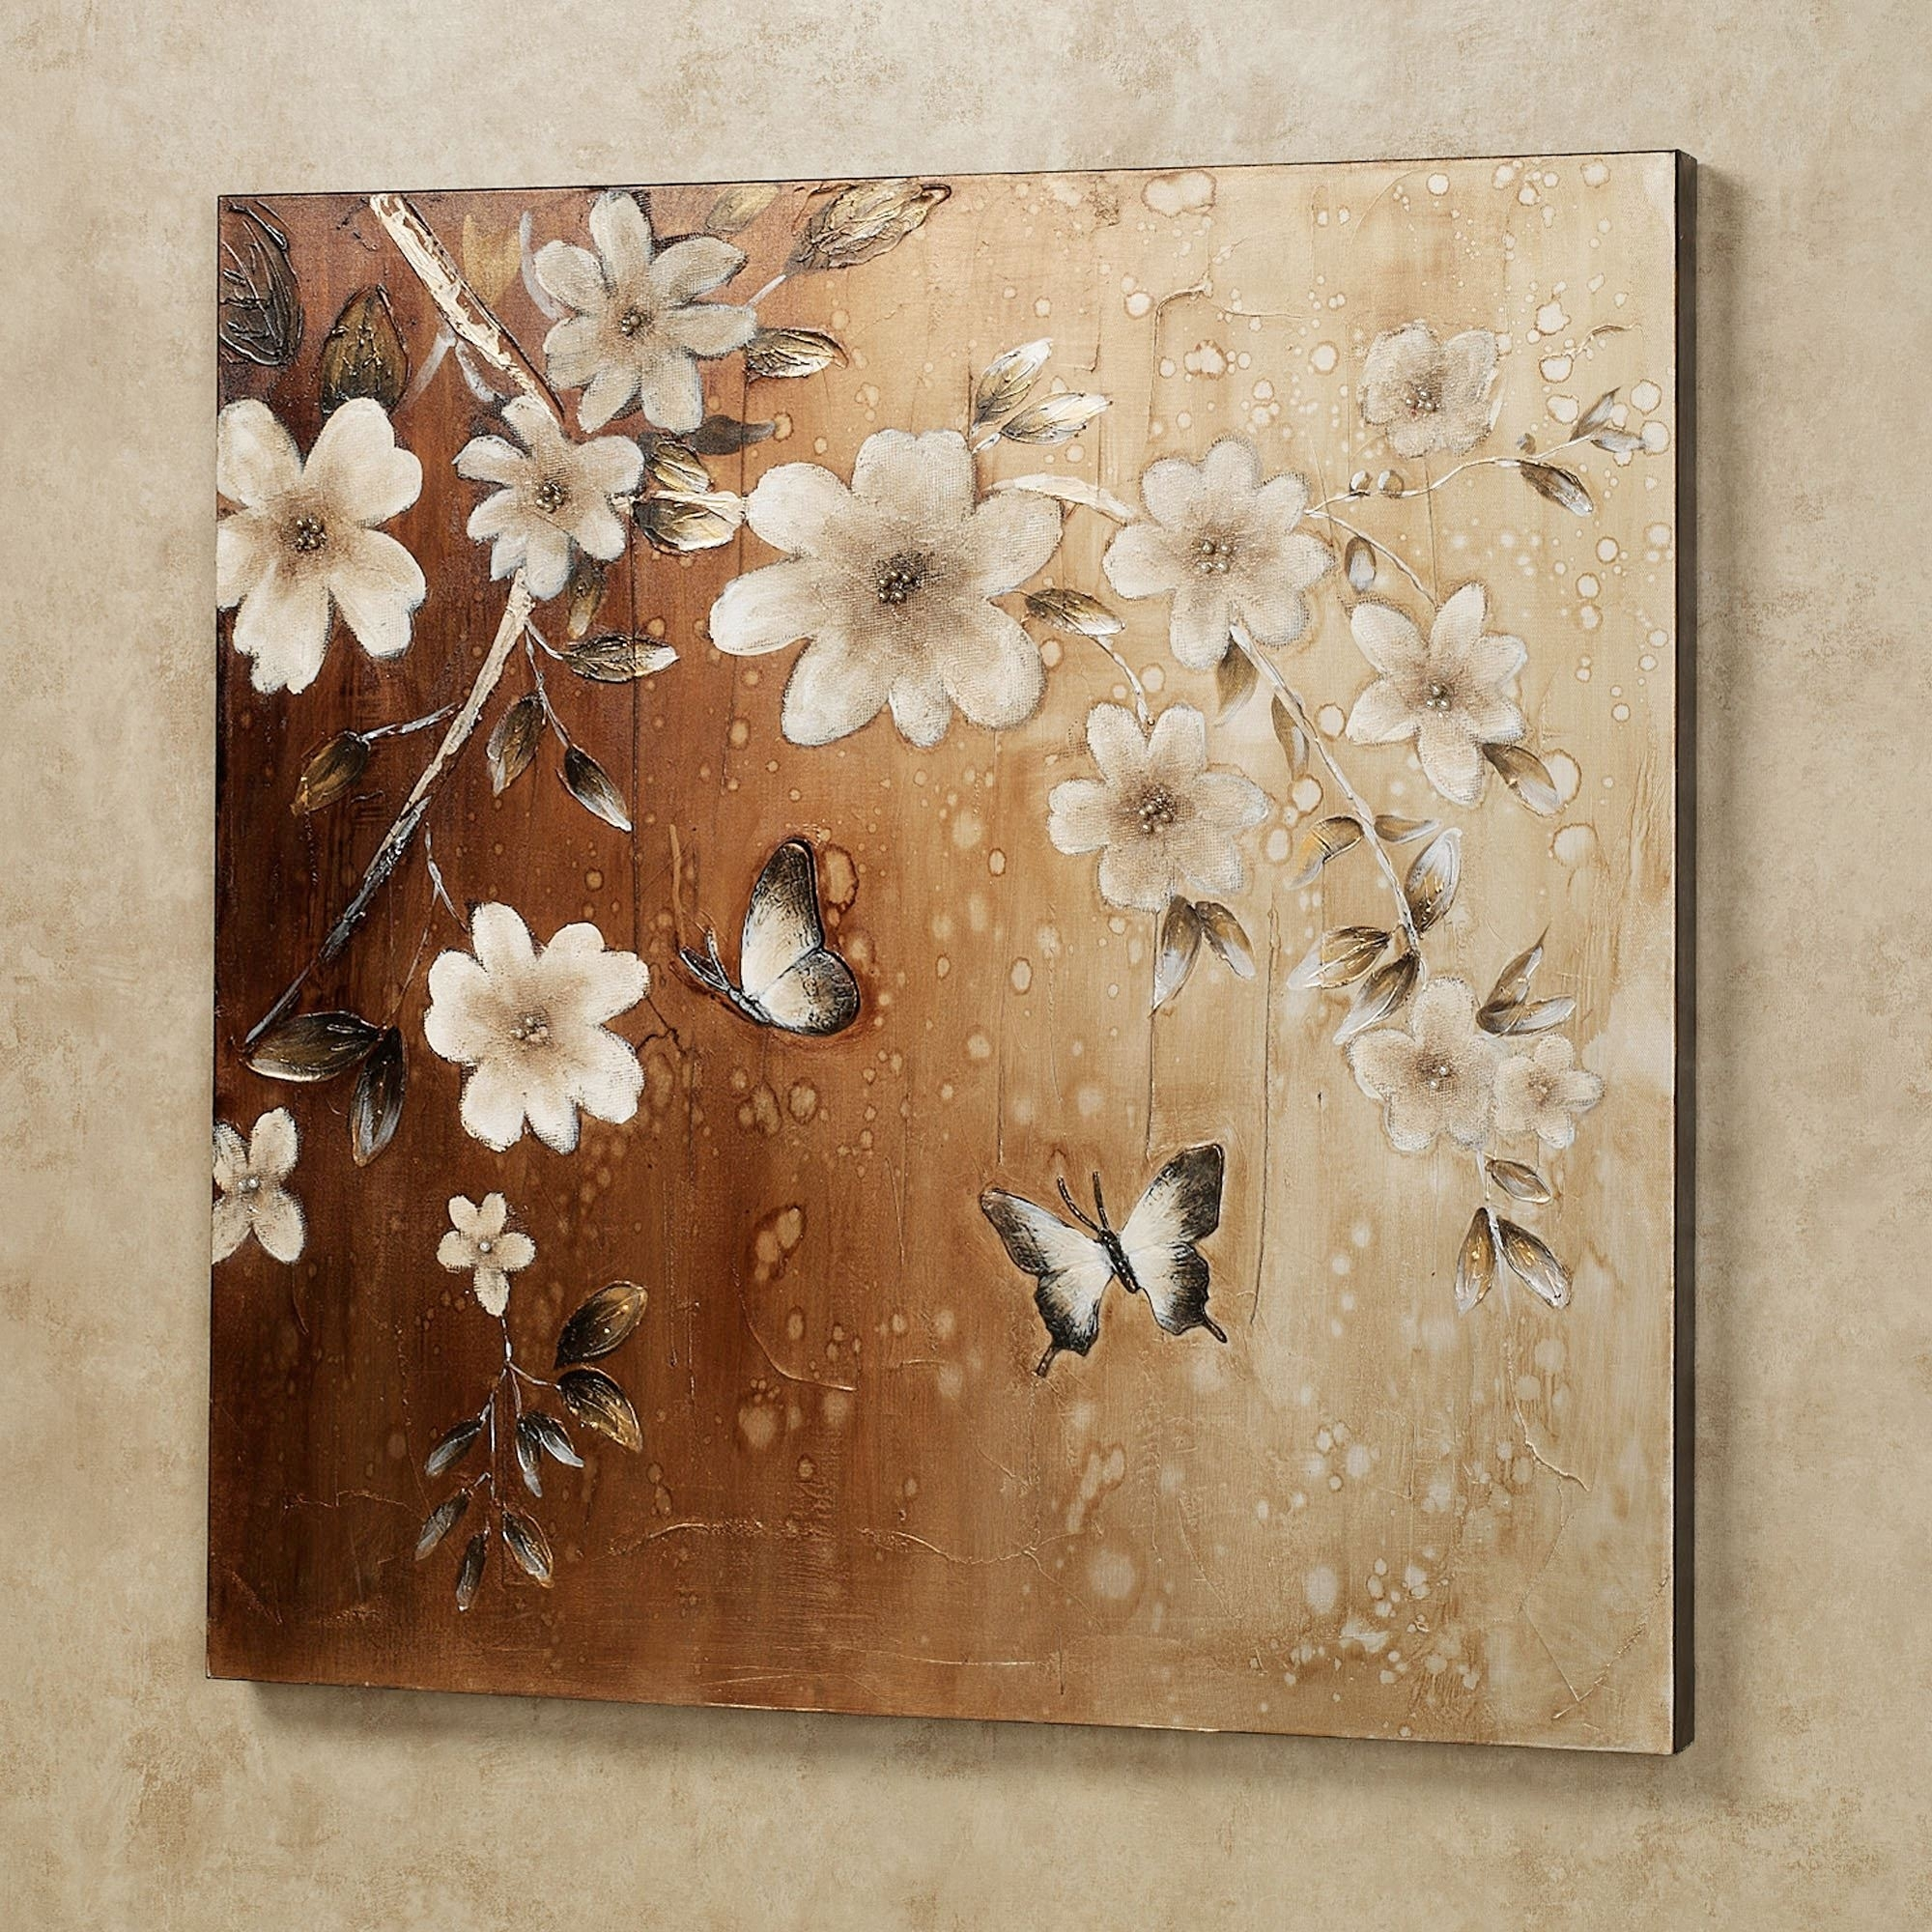 Midday Sun Butterfly Floral Canvas Wall Art With Regard To Best And Newest Butterflies Canvas Wall Art (View 1 of 15)